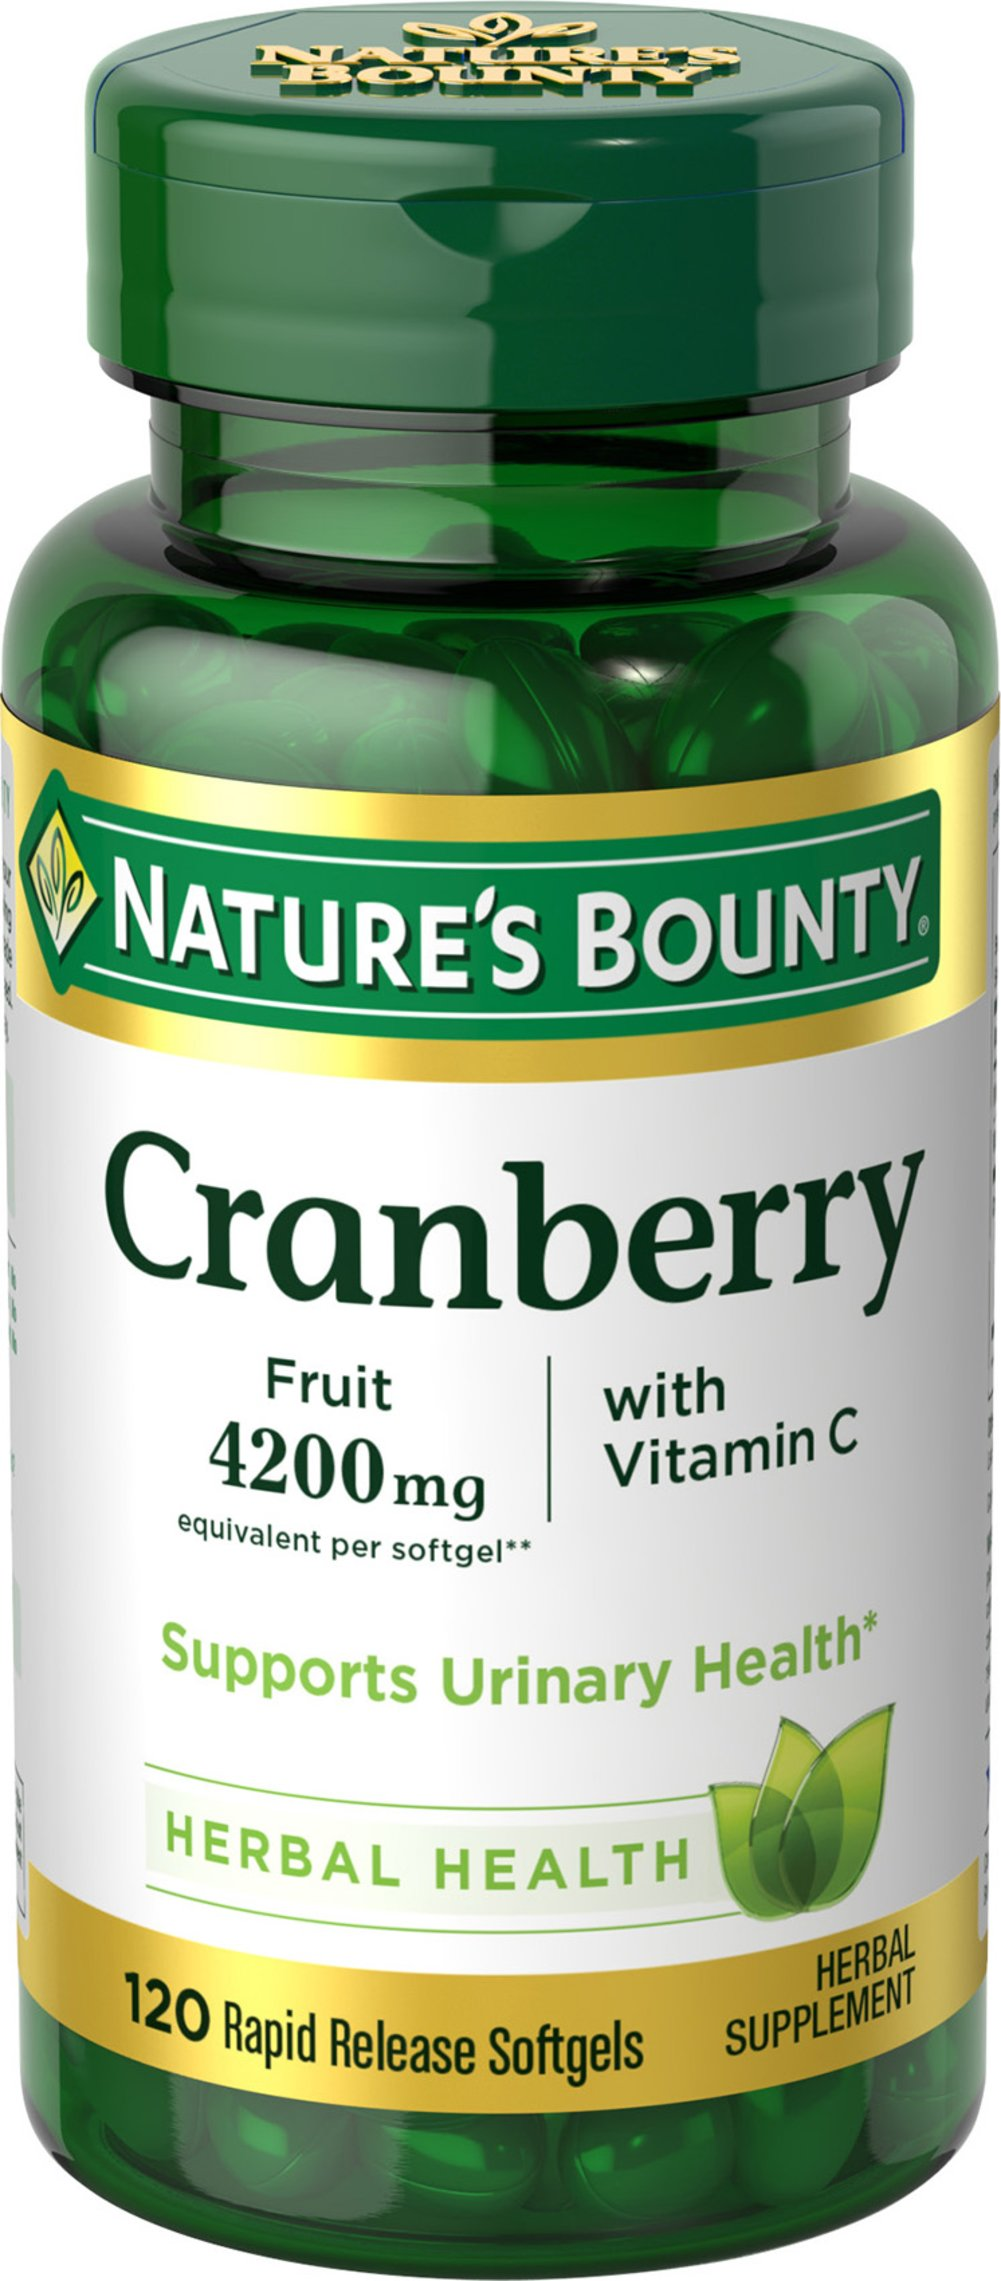 Nature's Bounty® Cranberry plus Vitamin C